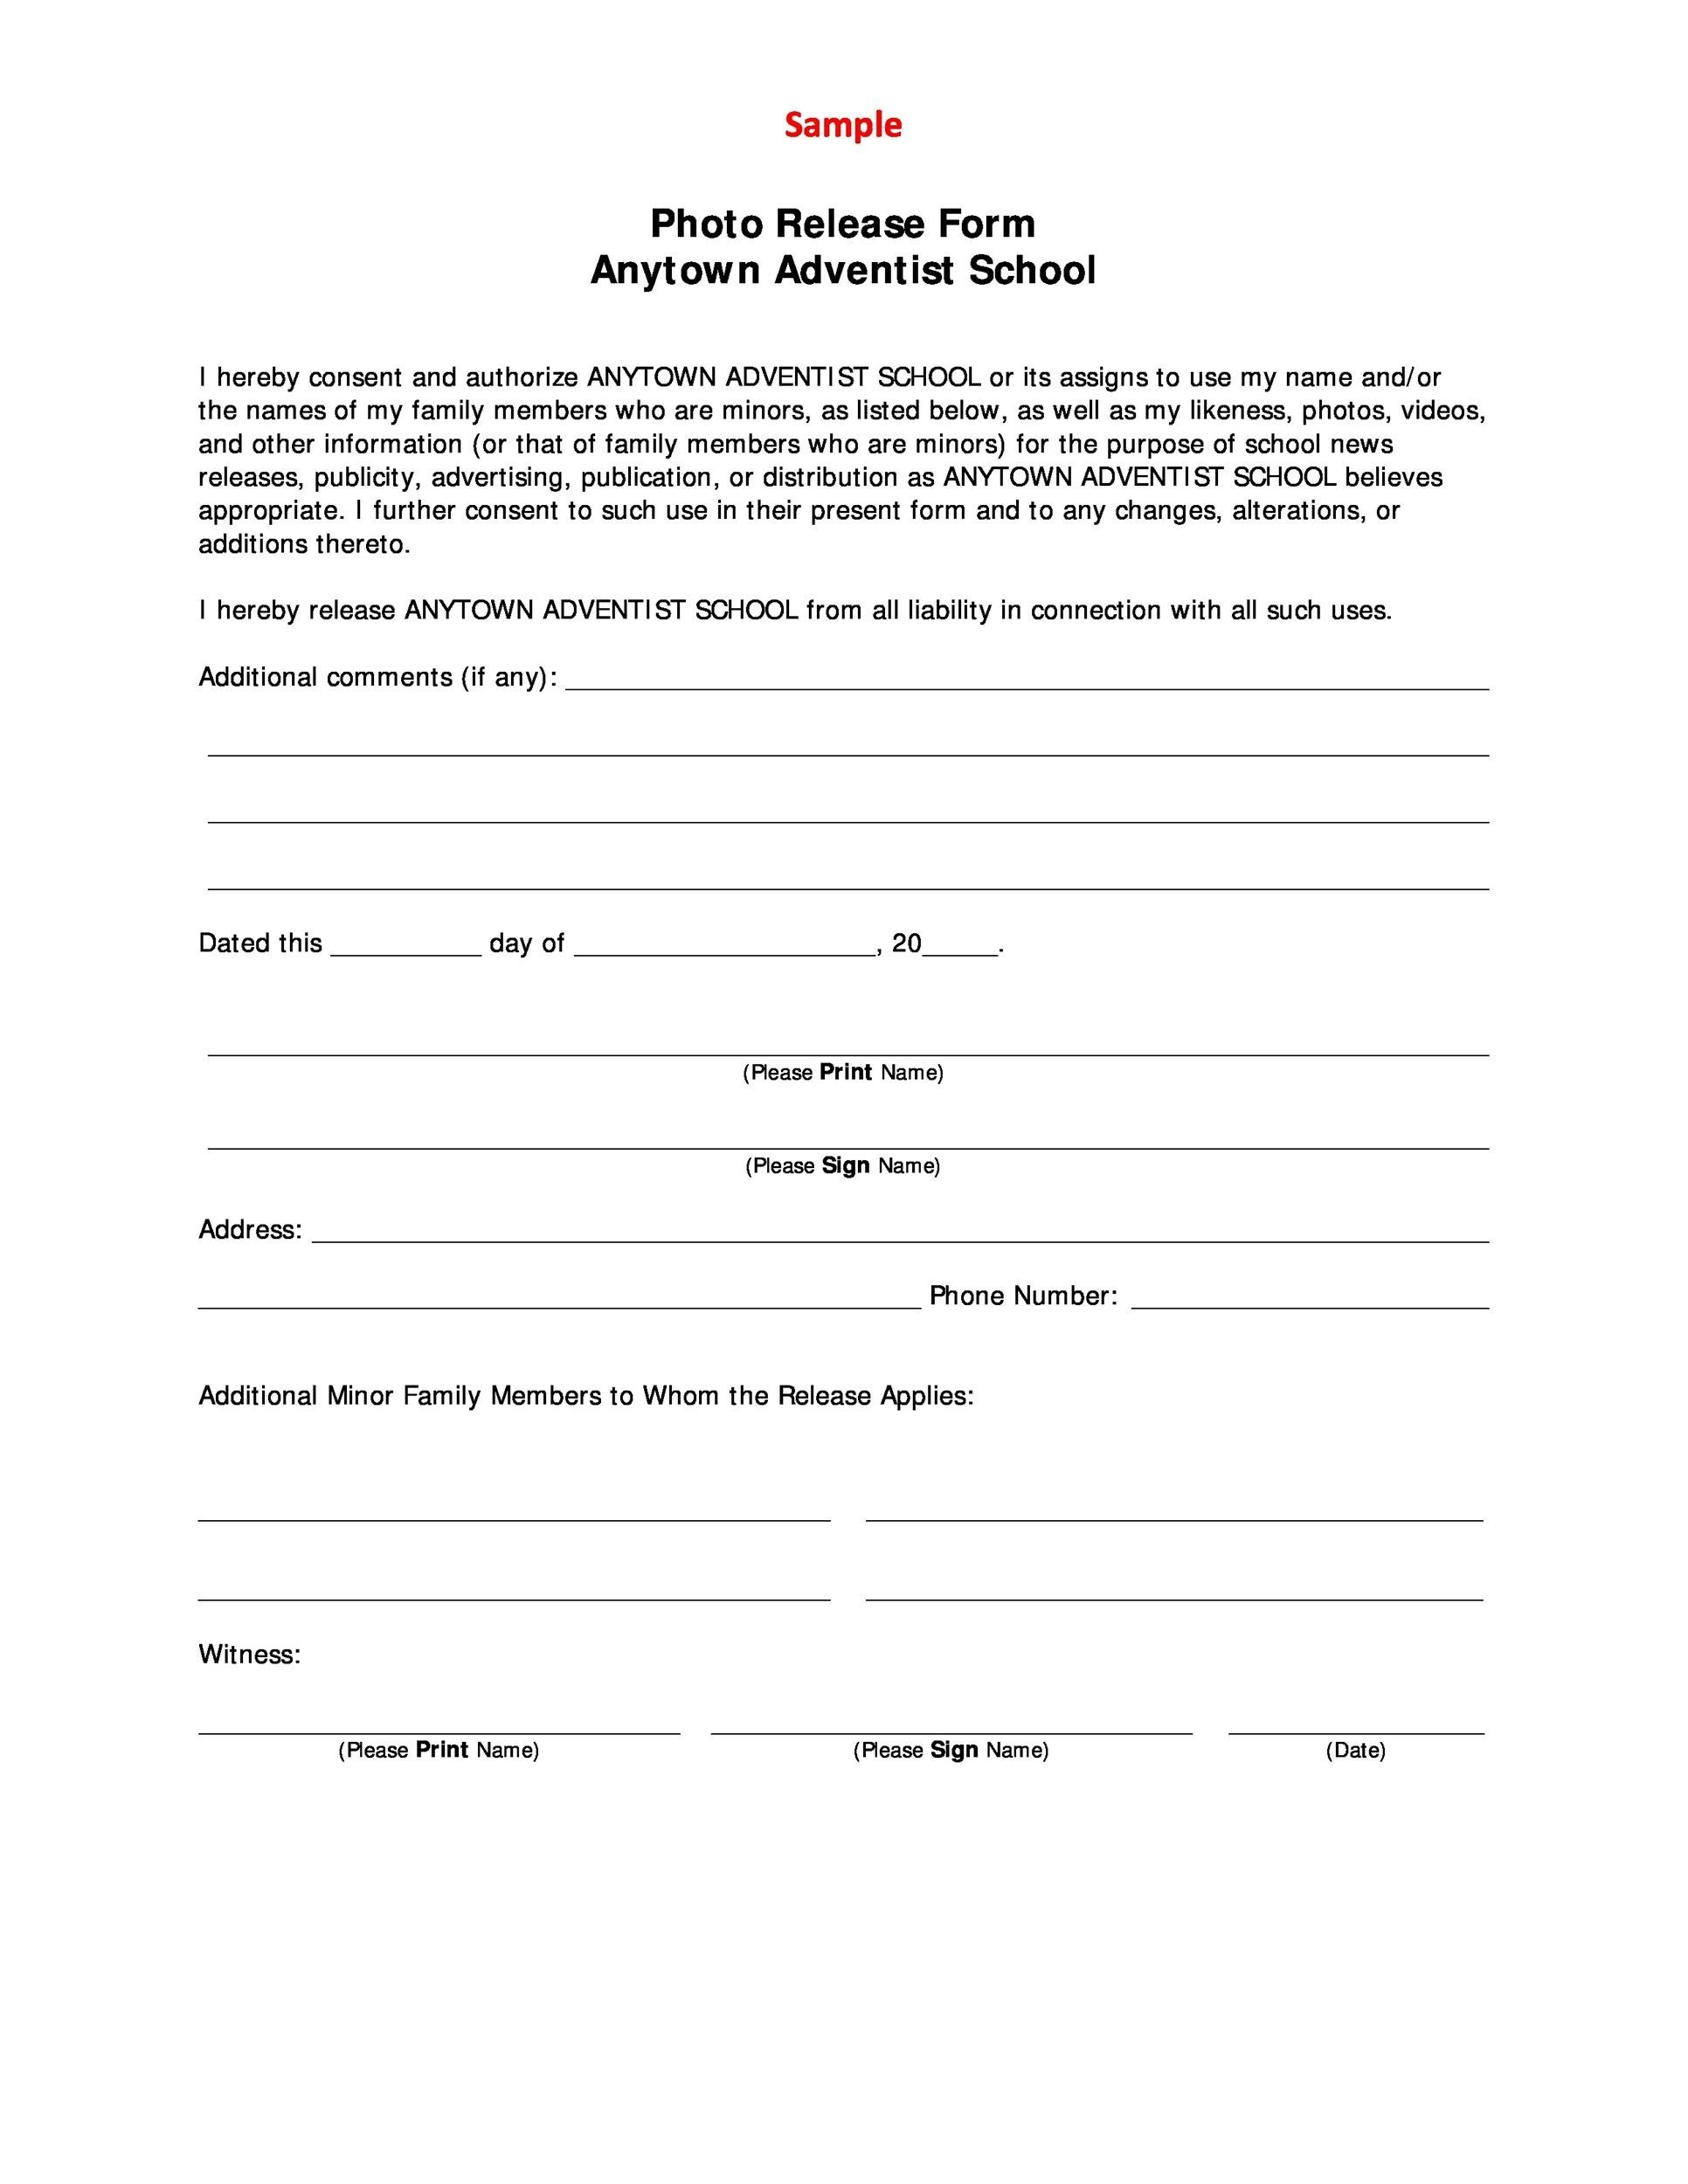 Free photo release form 15